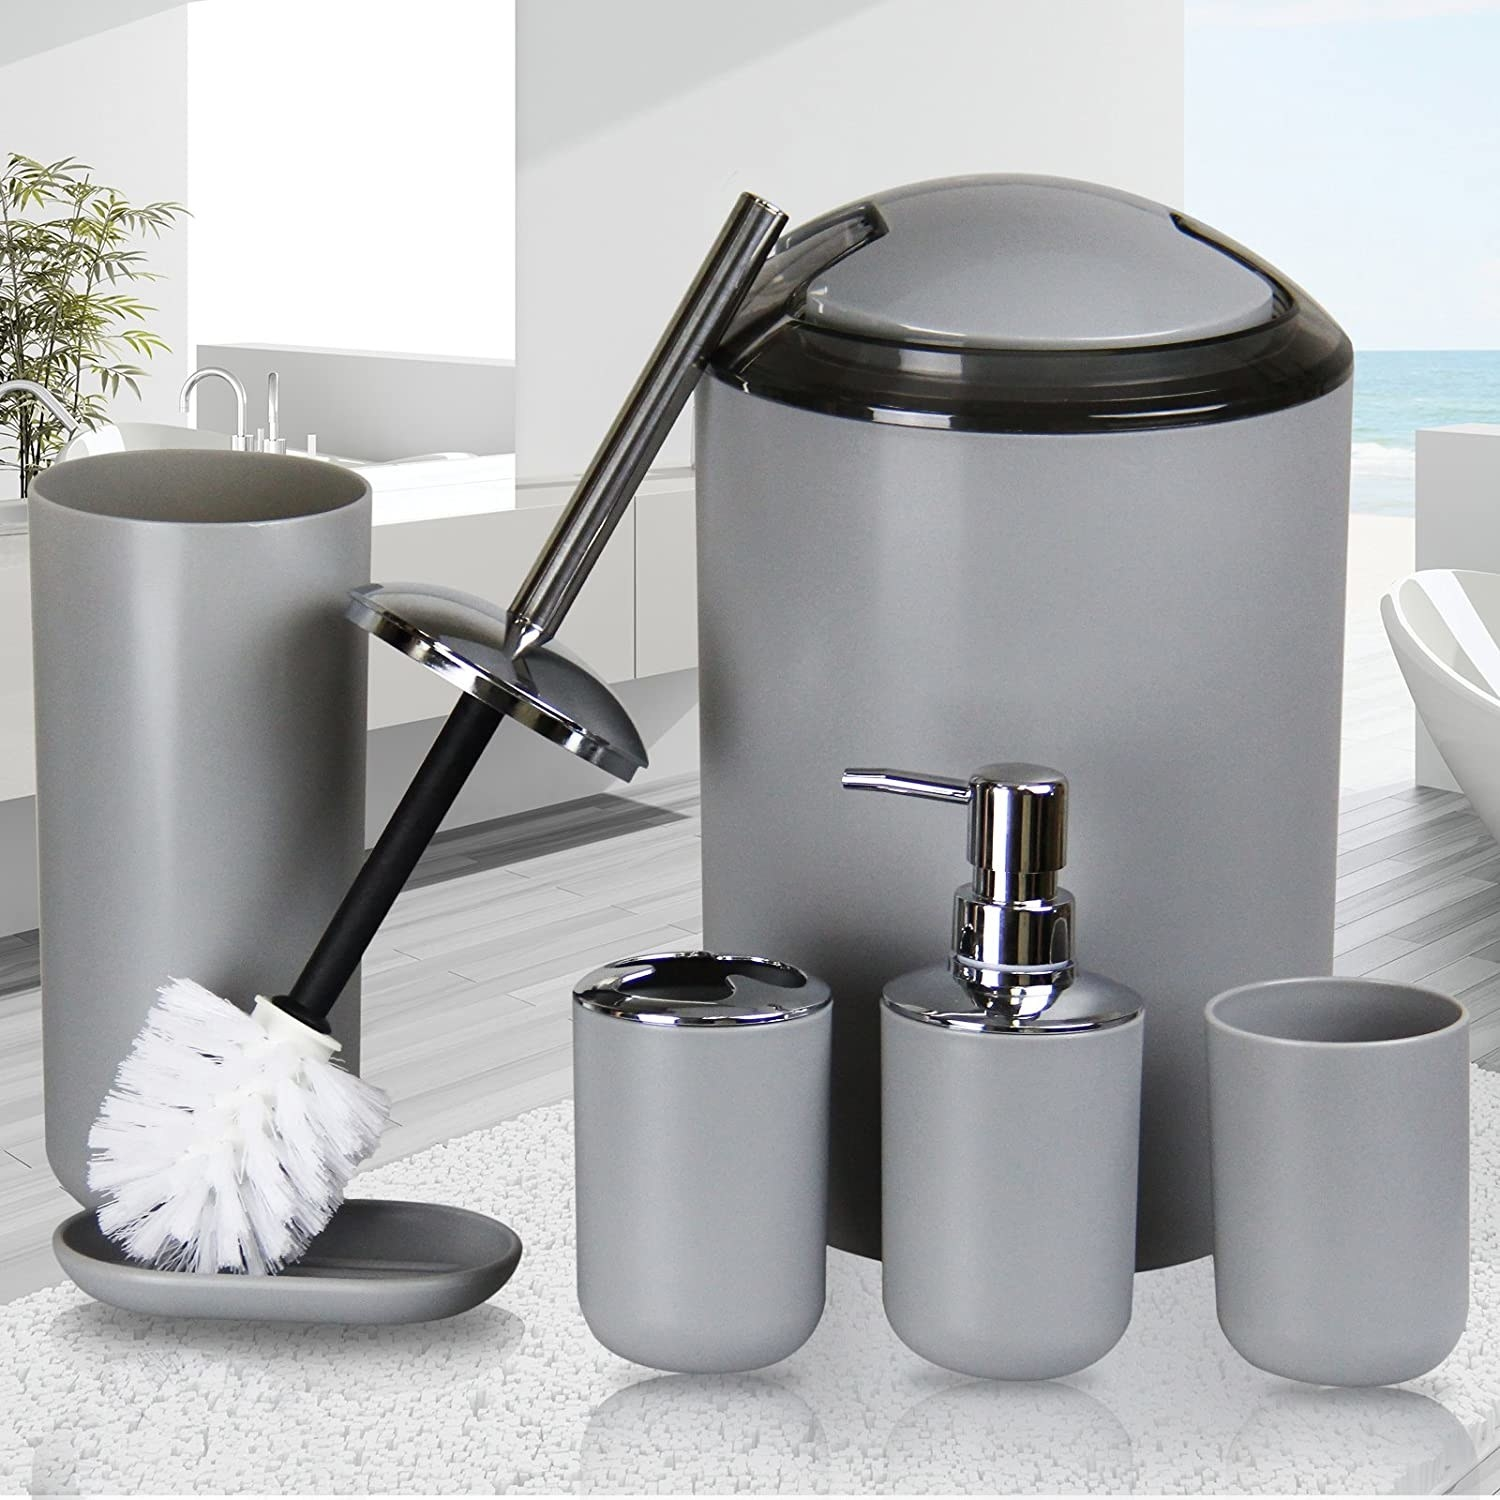 The set that includes a trash can, soap dispenser, soap dish, toilet brush, toothbrush holder, and toothbrush cup in apricot